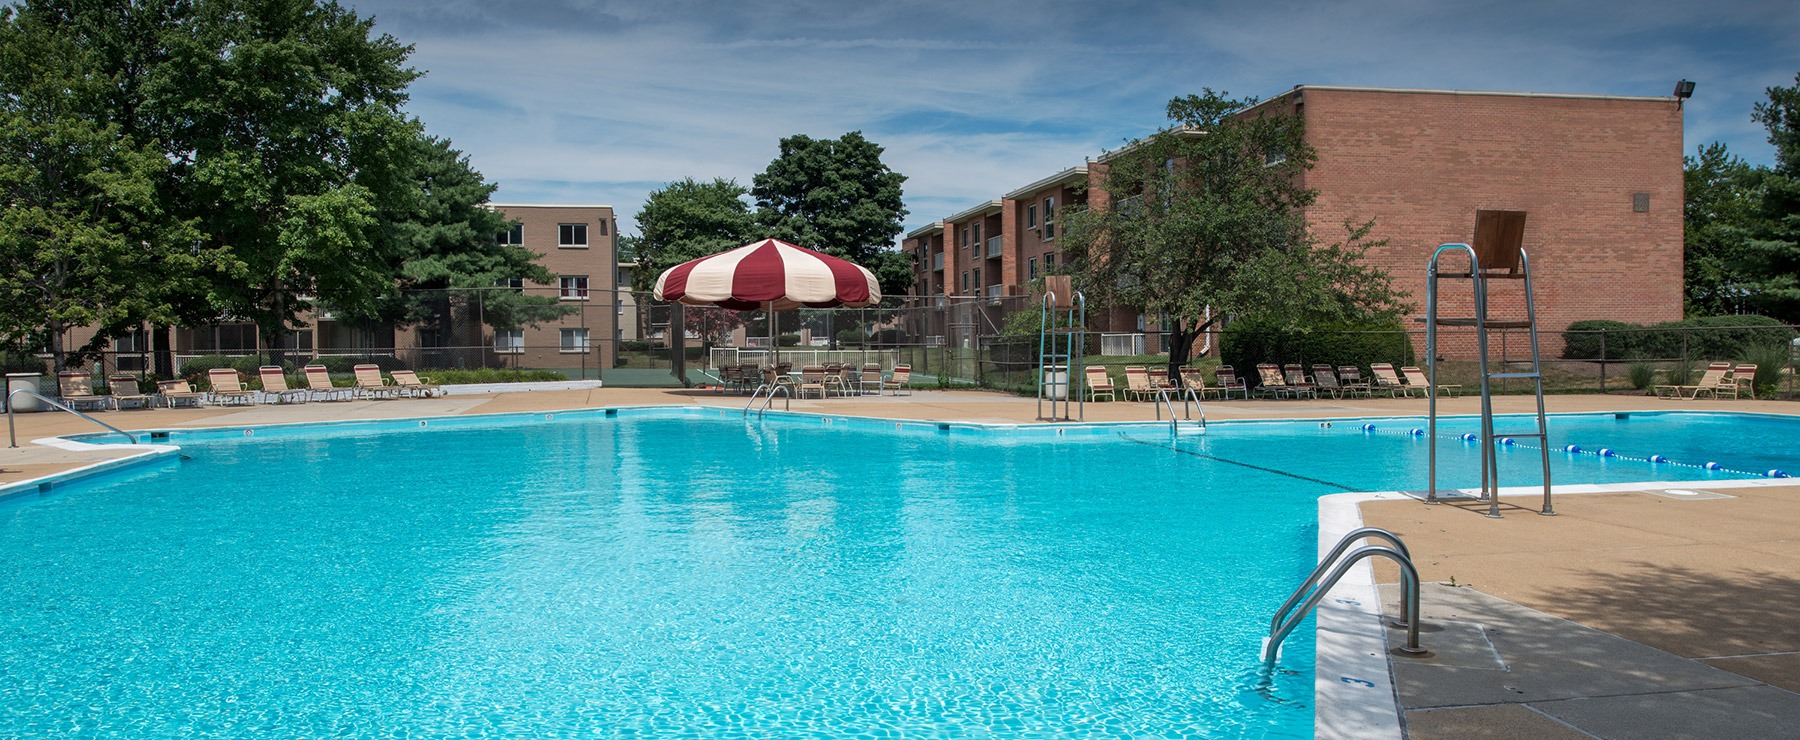 Apartments for rent in alexandria virginia lerner morningside Swimming pools in alexandria va